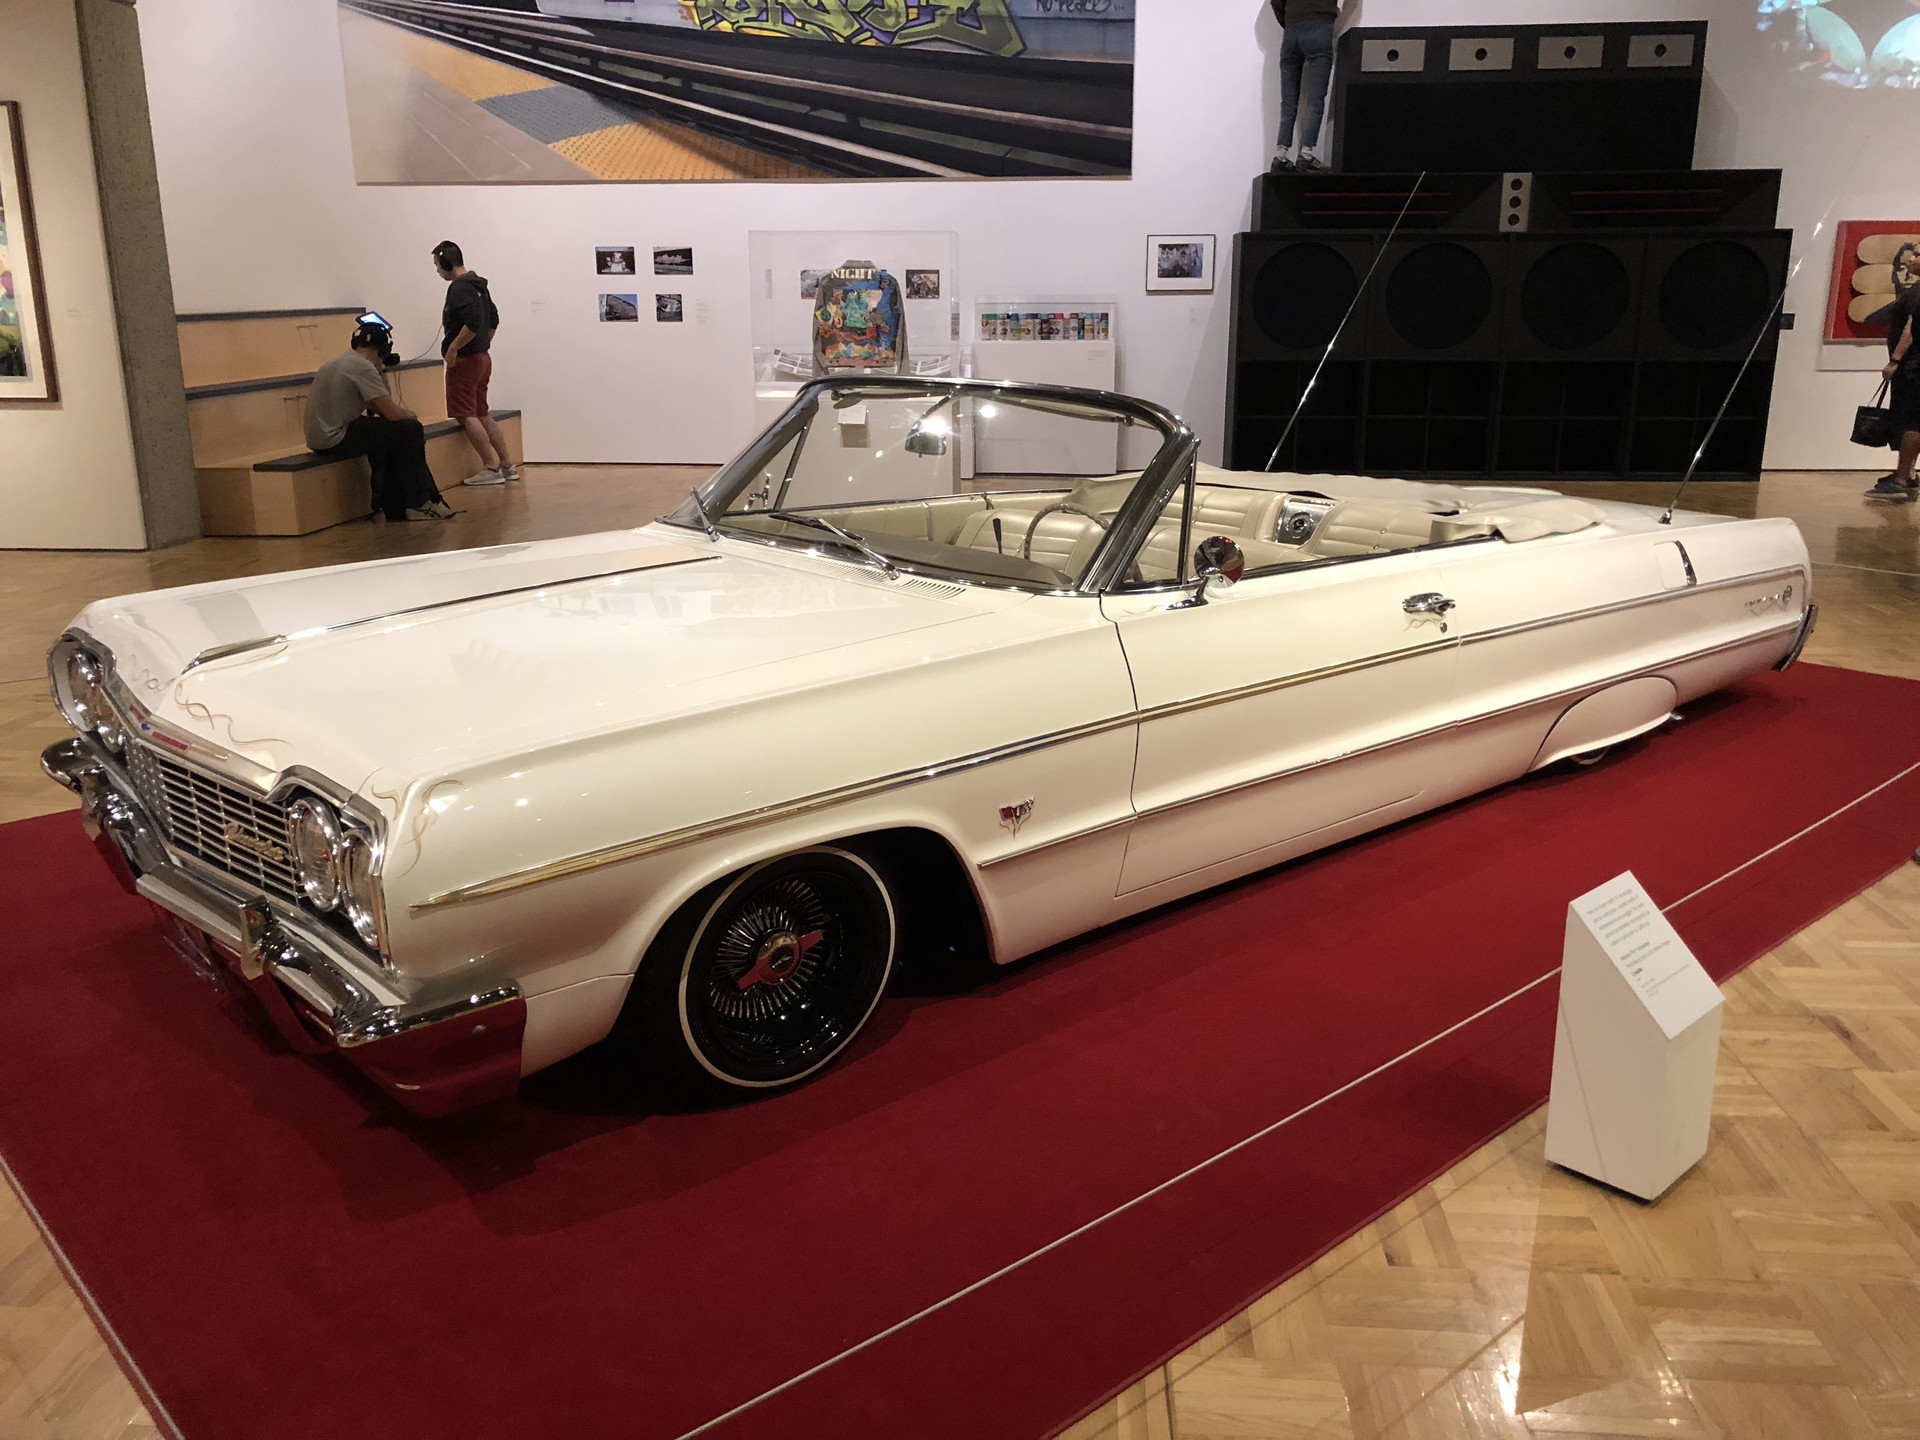 """A 1964 Chevy Impala Lowrider at the """"Respece: Hip-Hop Style & Wisdom"""" exhibit at the Oakland Museum of California exhibit. Car culture is a big part of hip-hop history and culture."""